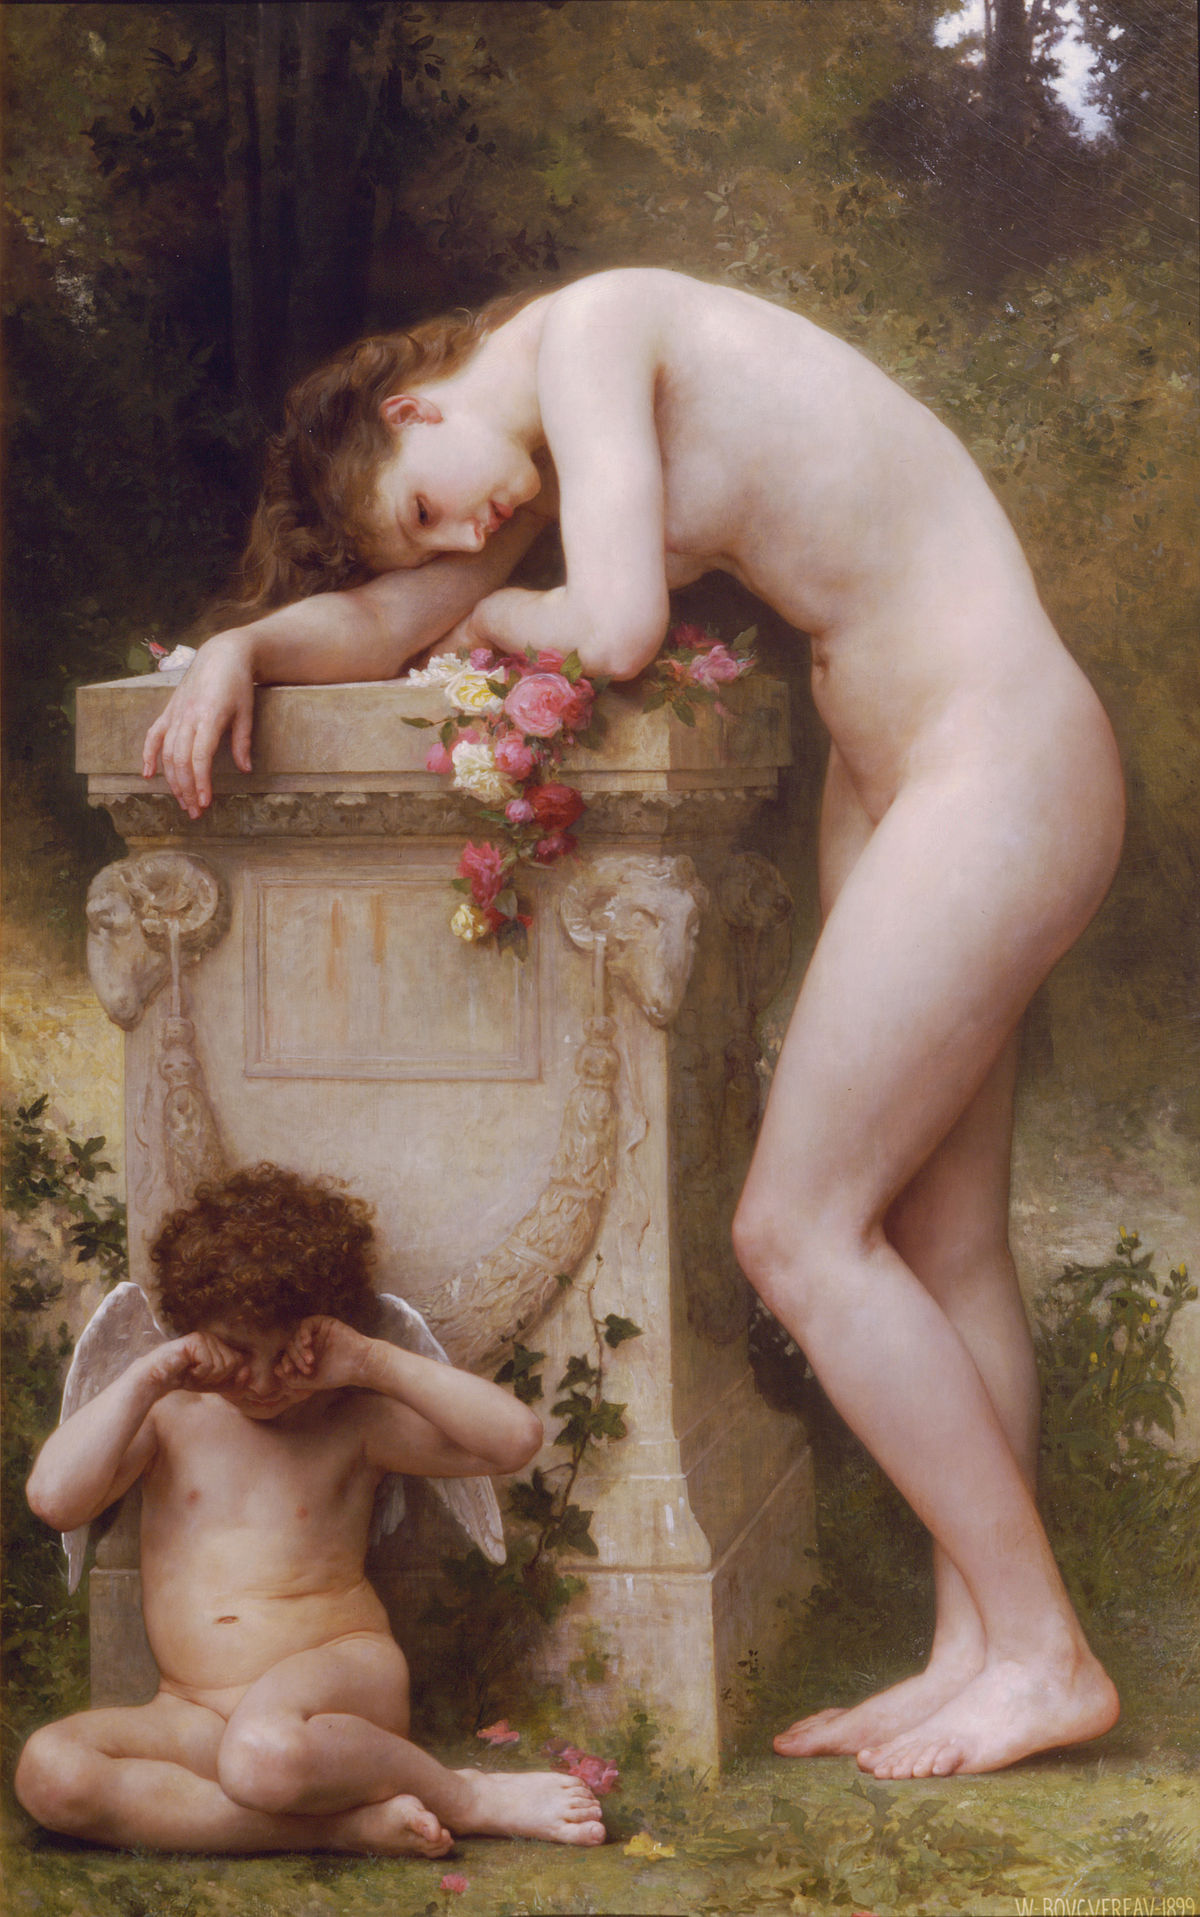 http://upload.wikimedia.org/wikipedia/commons/thumb/f/fa/William-Adolphe_Bouguereau_(1825-1905)_-_Elegy_(1899).jpg/1200px-William-Adolphe_Bouguereau_(1825-1905)_-_Elegy_(1899).jpg